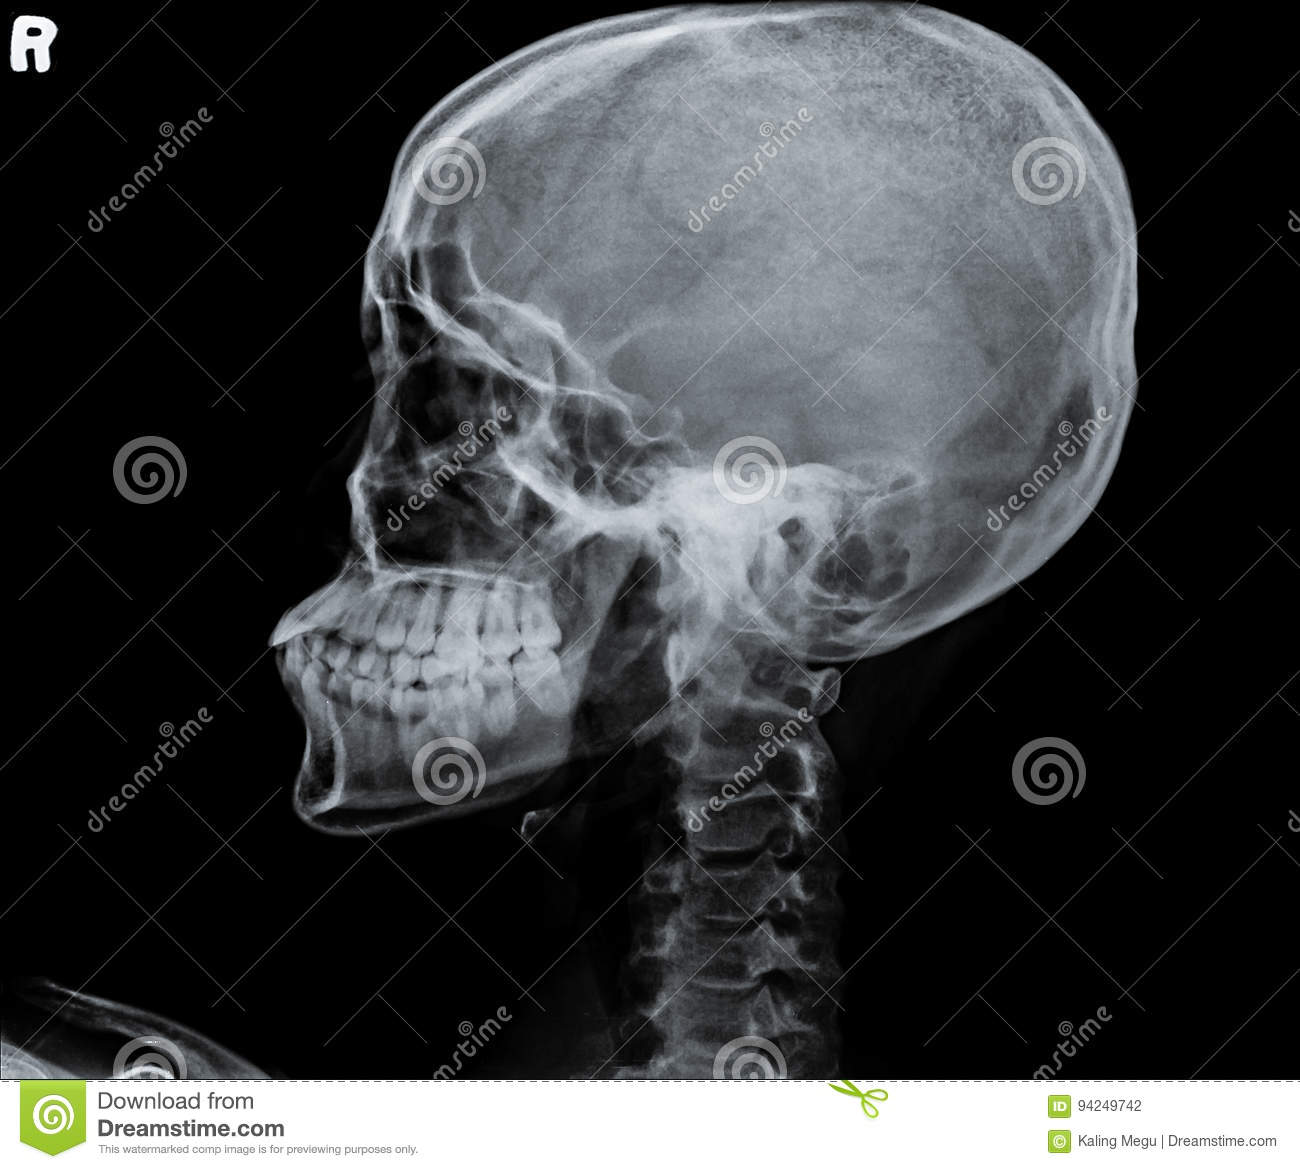 X Ray Of Side View Of Human Child Skull. Stock Photo - Image of ...